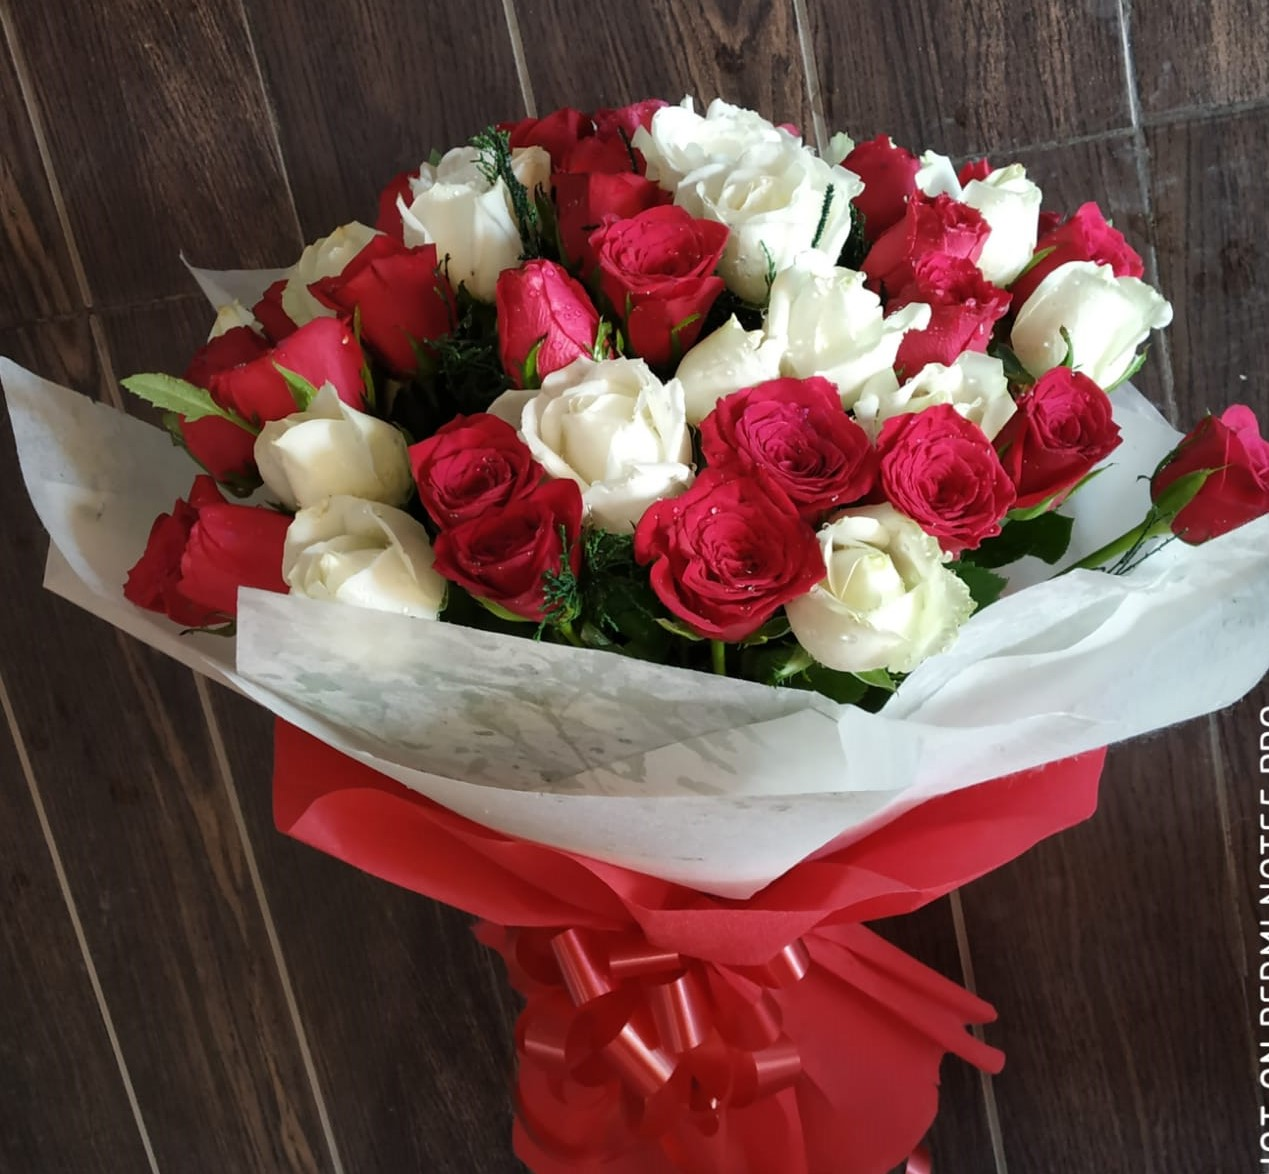 Flowers Delivery in Sector 7 GurgaonRed & White Roses in Duble Layer Packing